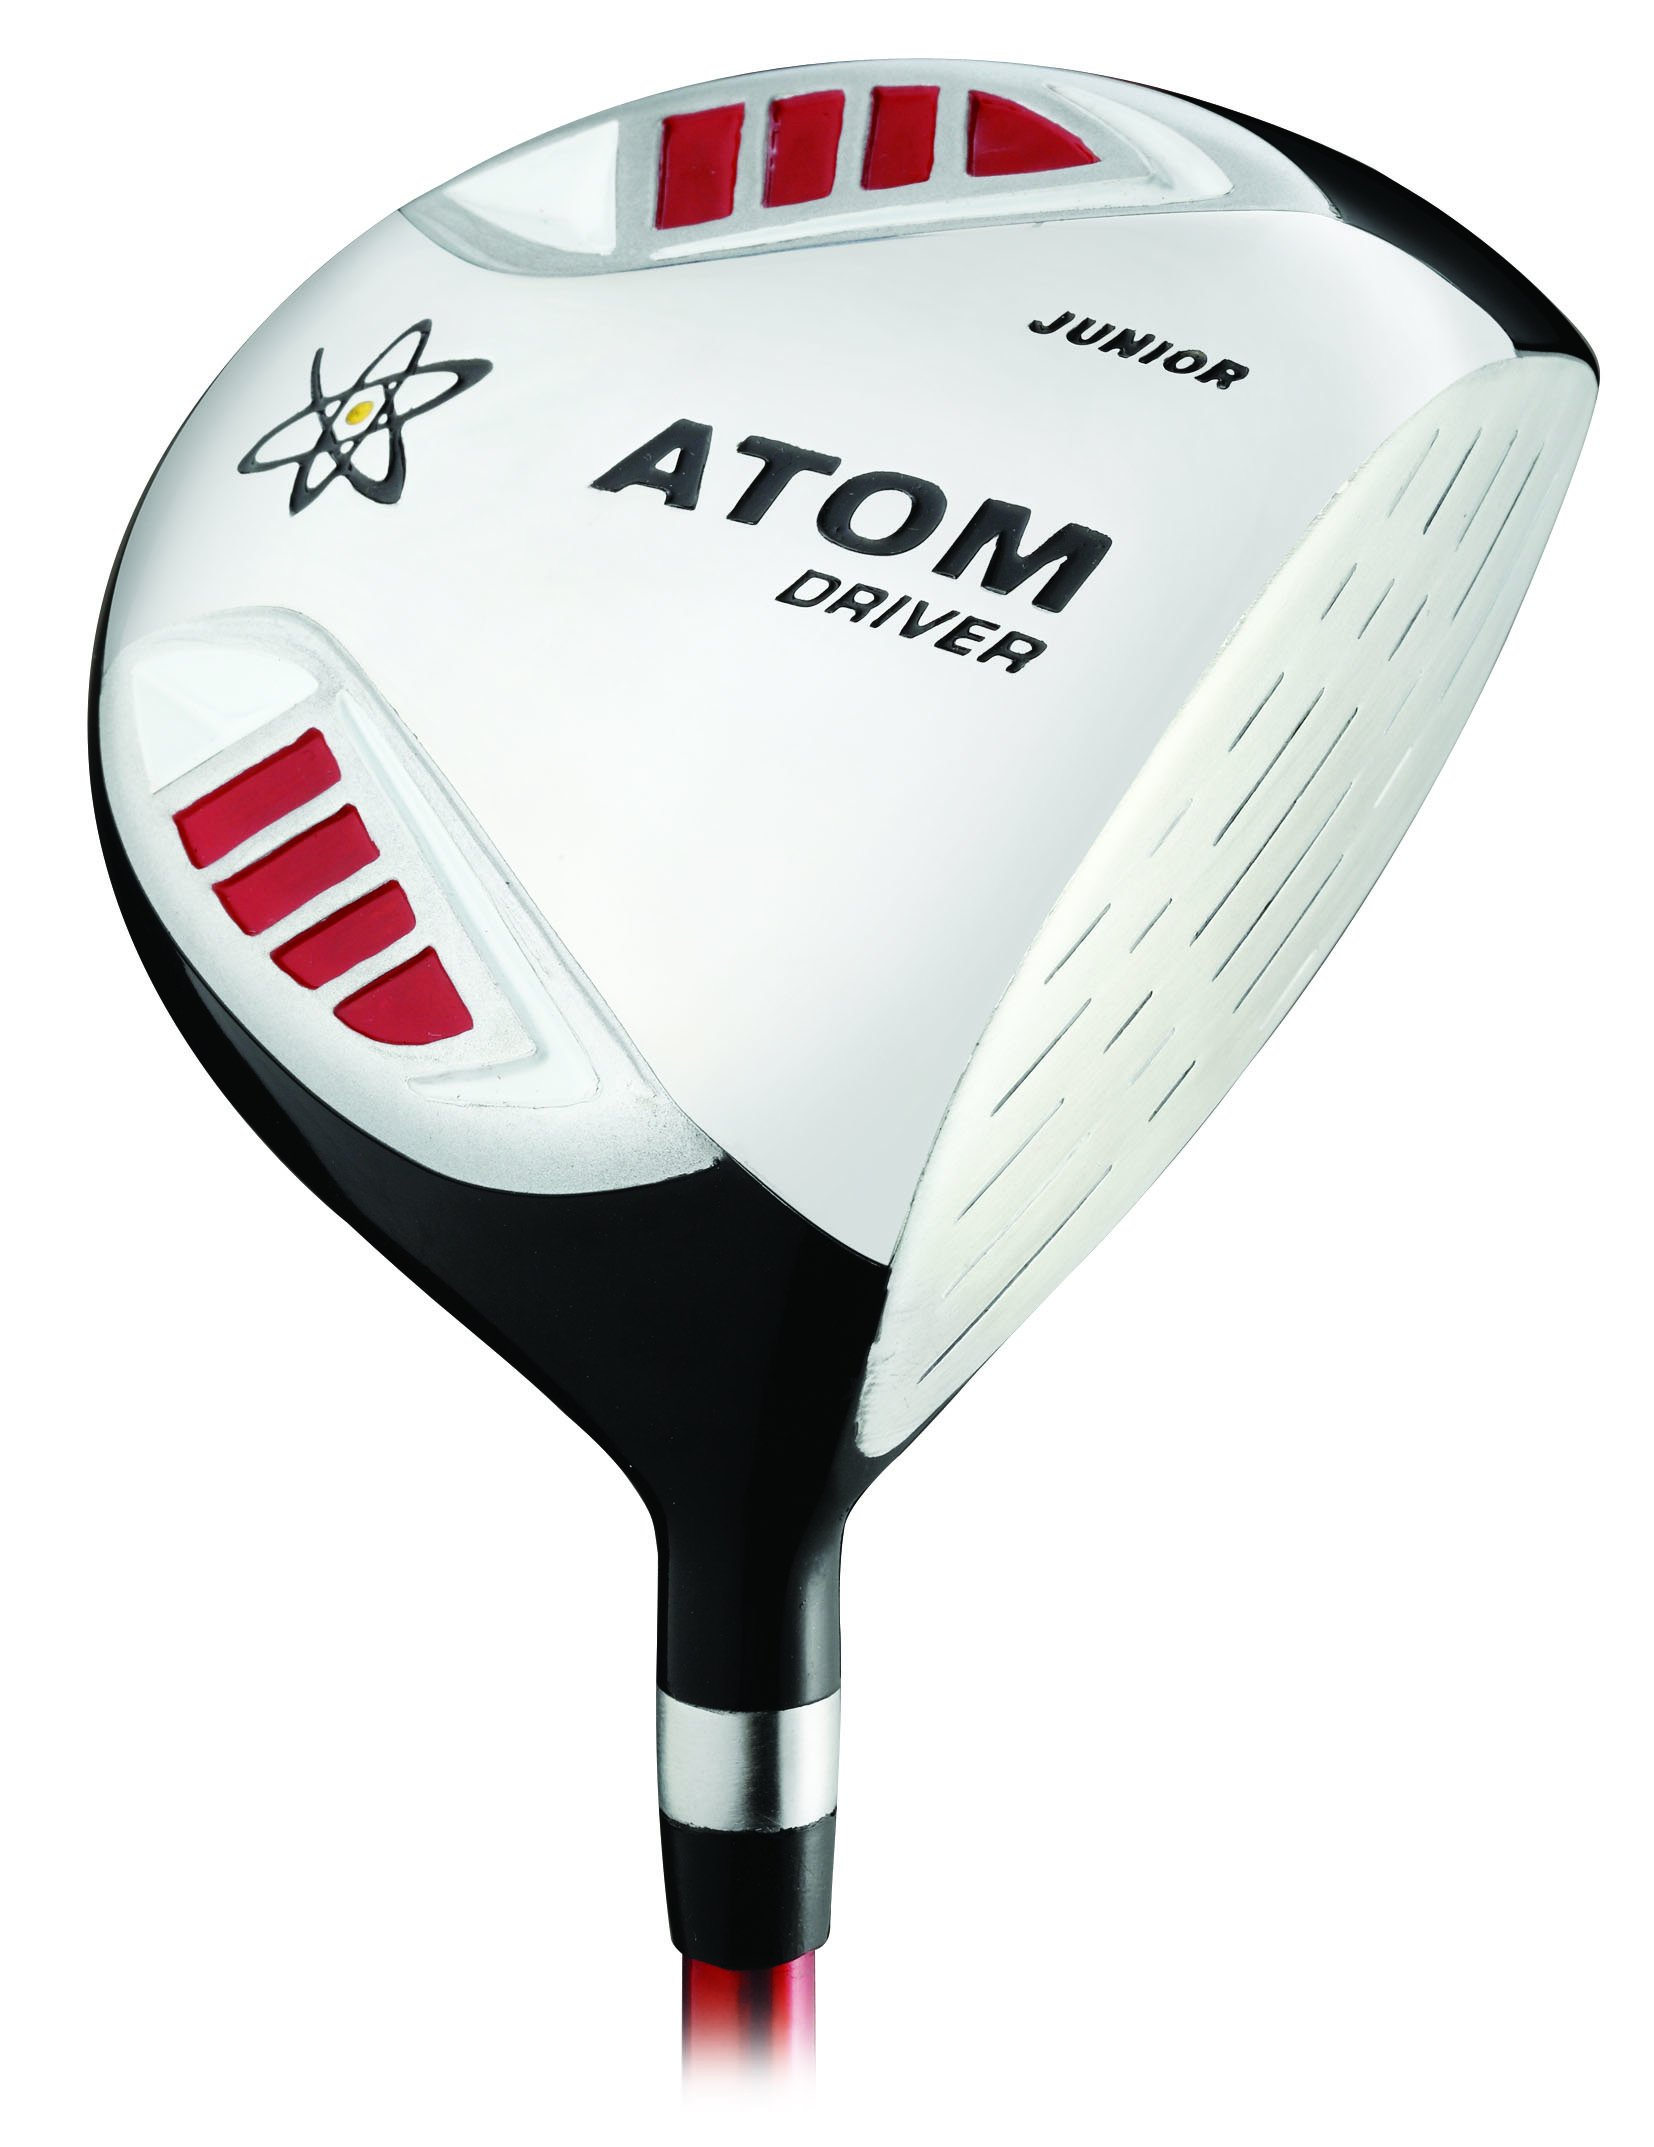 ATOM Complete Junior Golf Set, Youth 45-54'' tall, Ages 6 -10, Right-handed by Founders Club (Image #2)